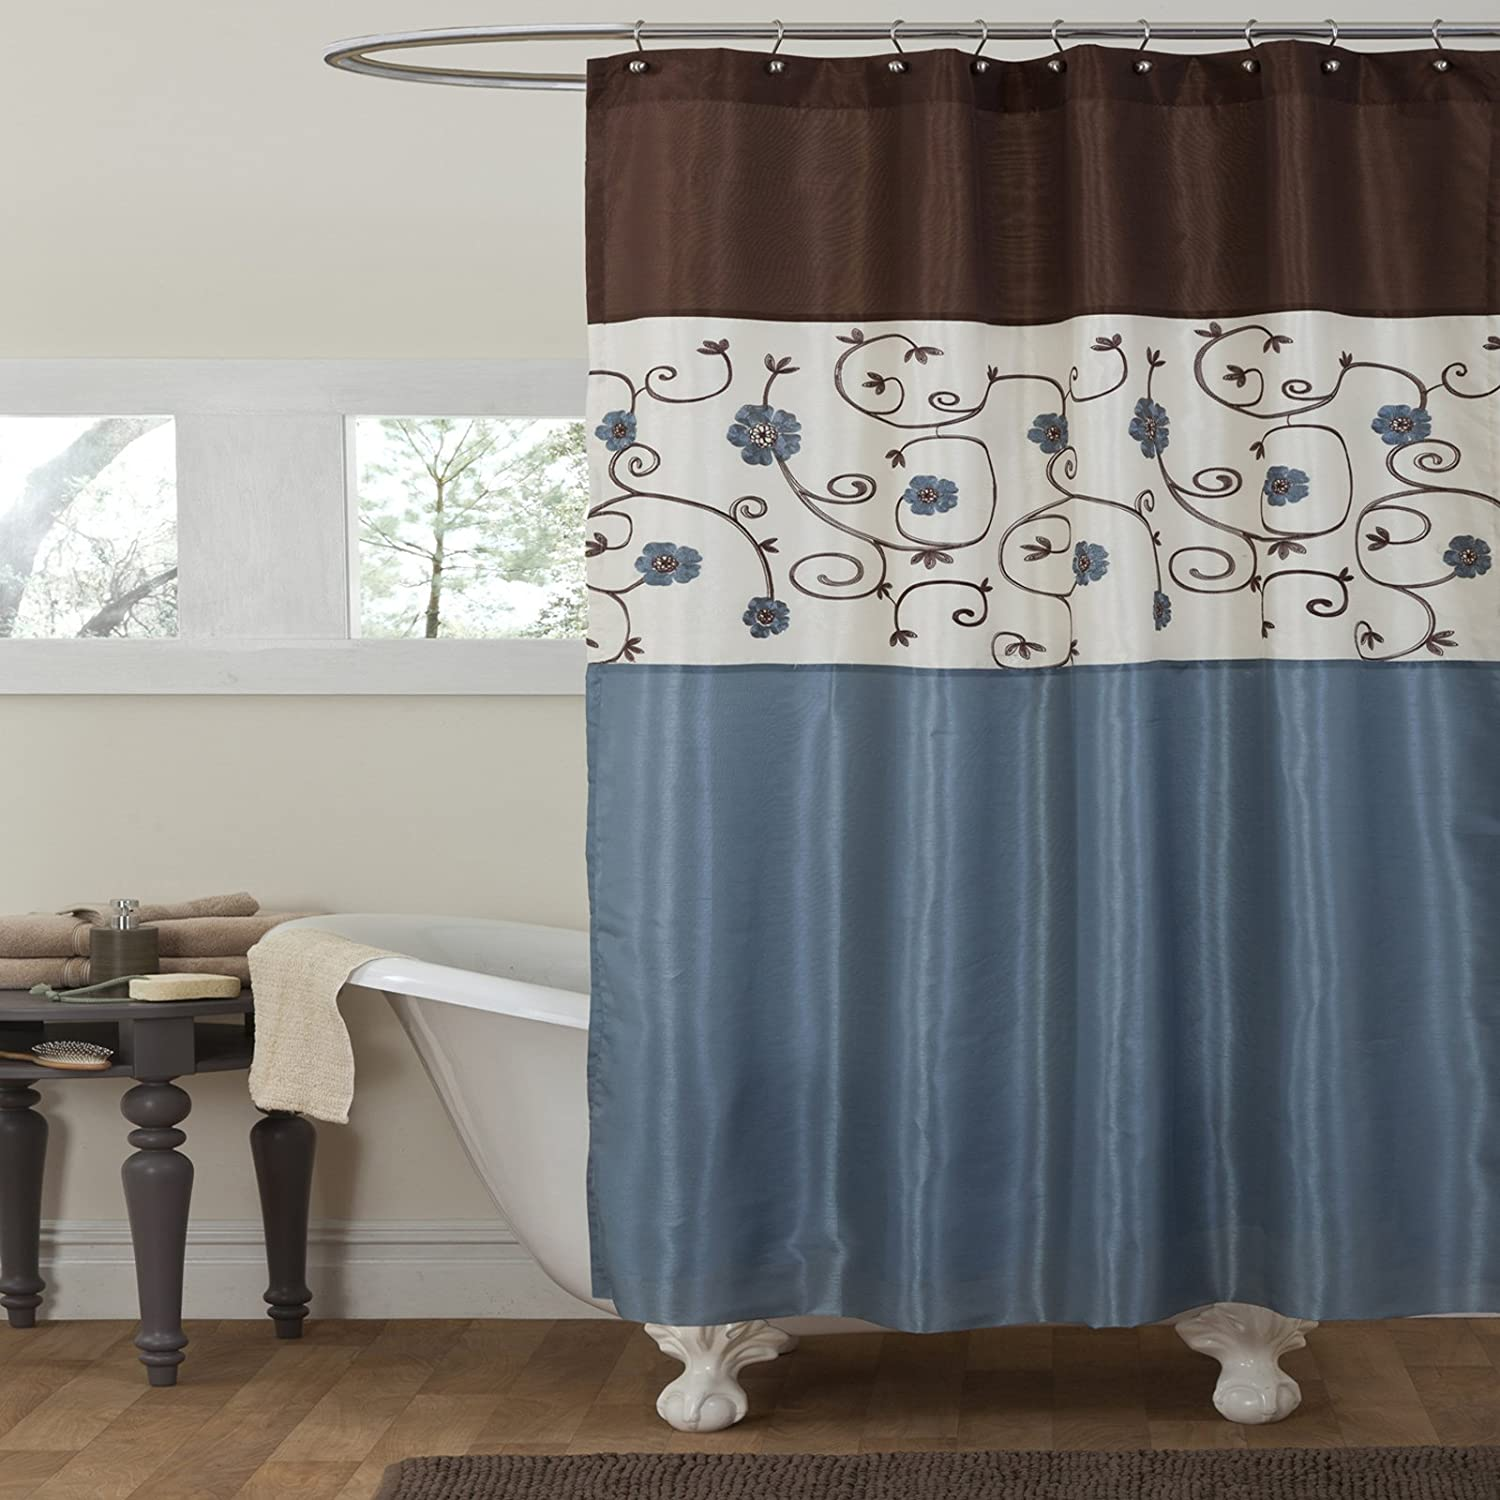 Gray and blue shower curtain - Amazon Com Lush Decor Royal Garden Shower Curtain 72 X 72 Inches Blue Home Kitchen